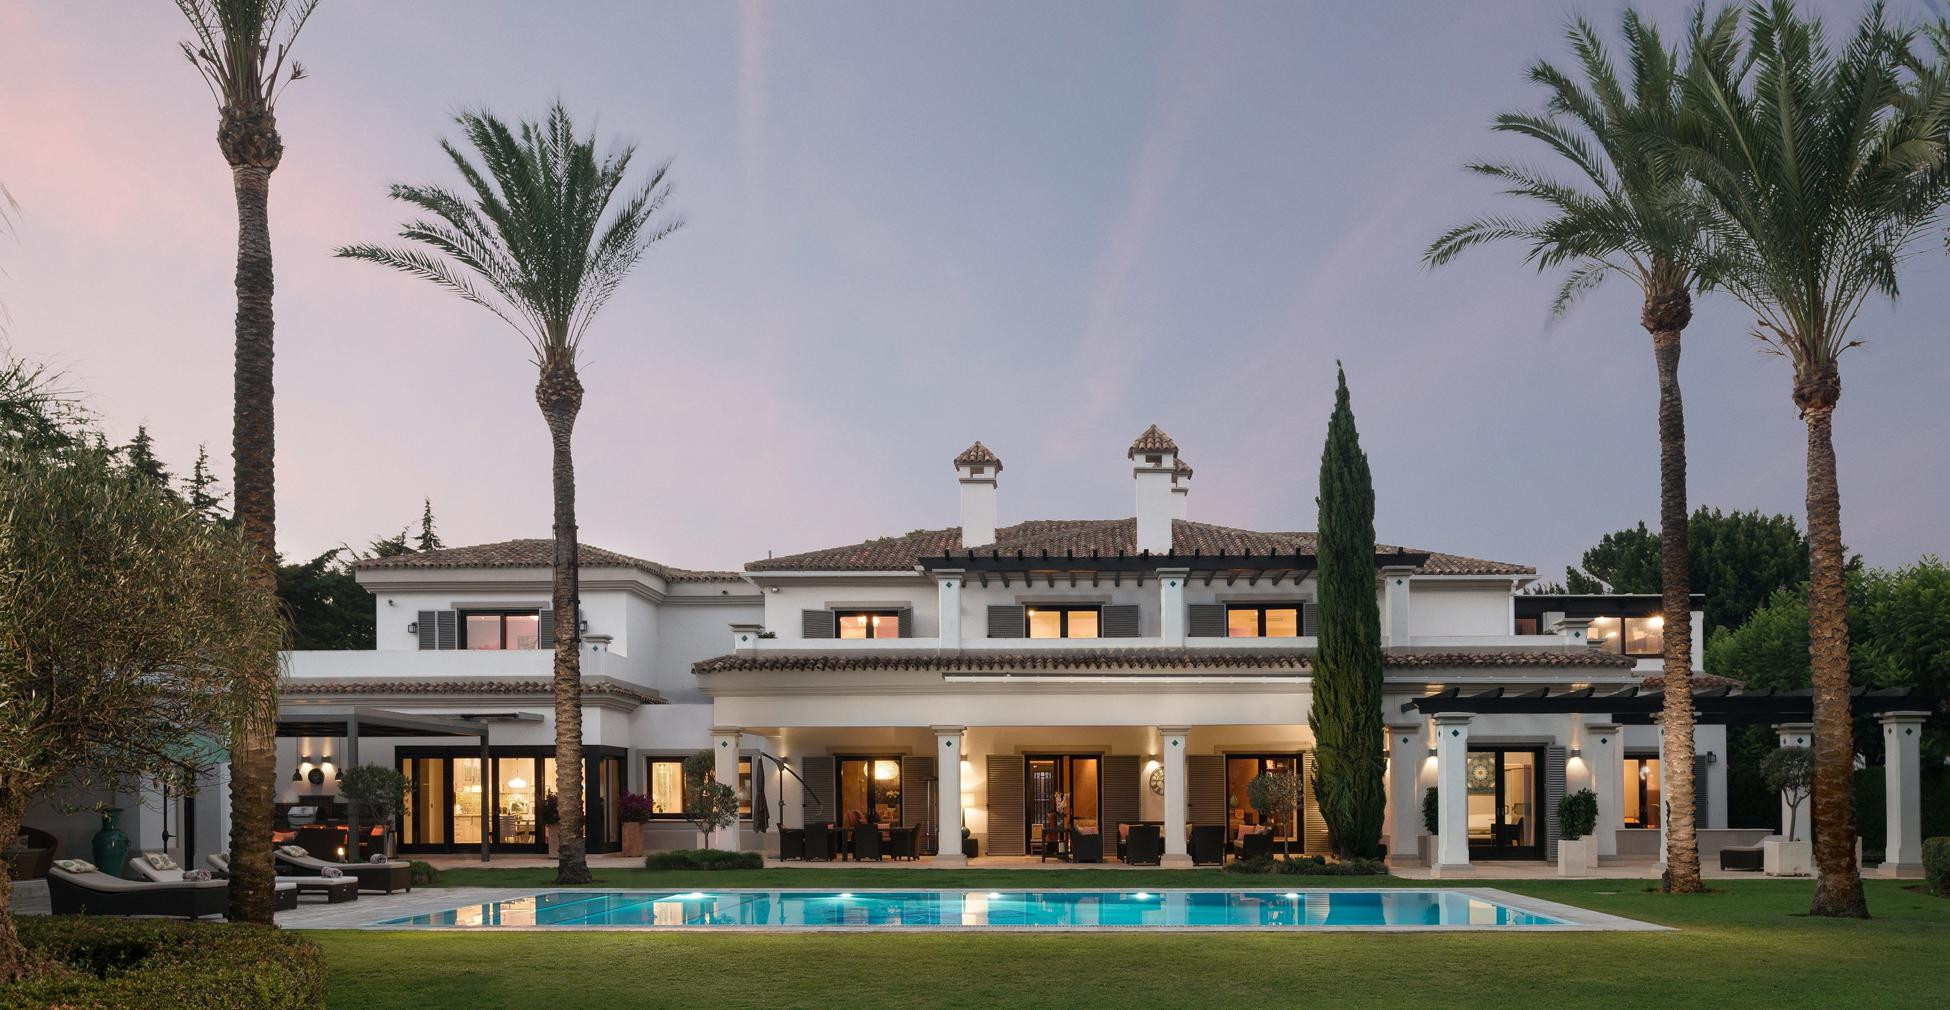 Sotogrande´s  Villa Mariposa is a lesson  in Style and Panache Image